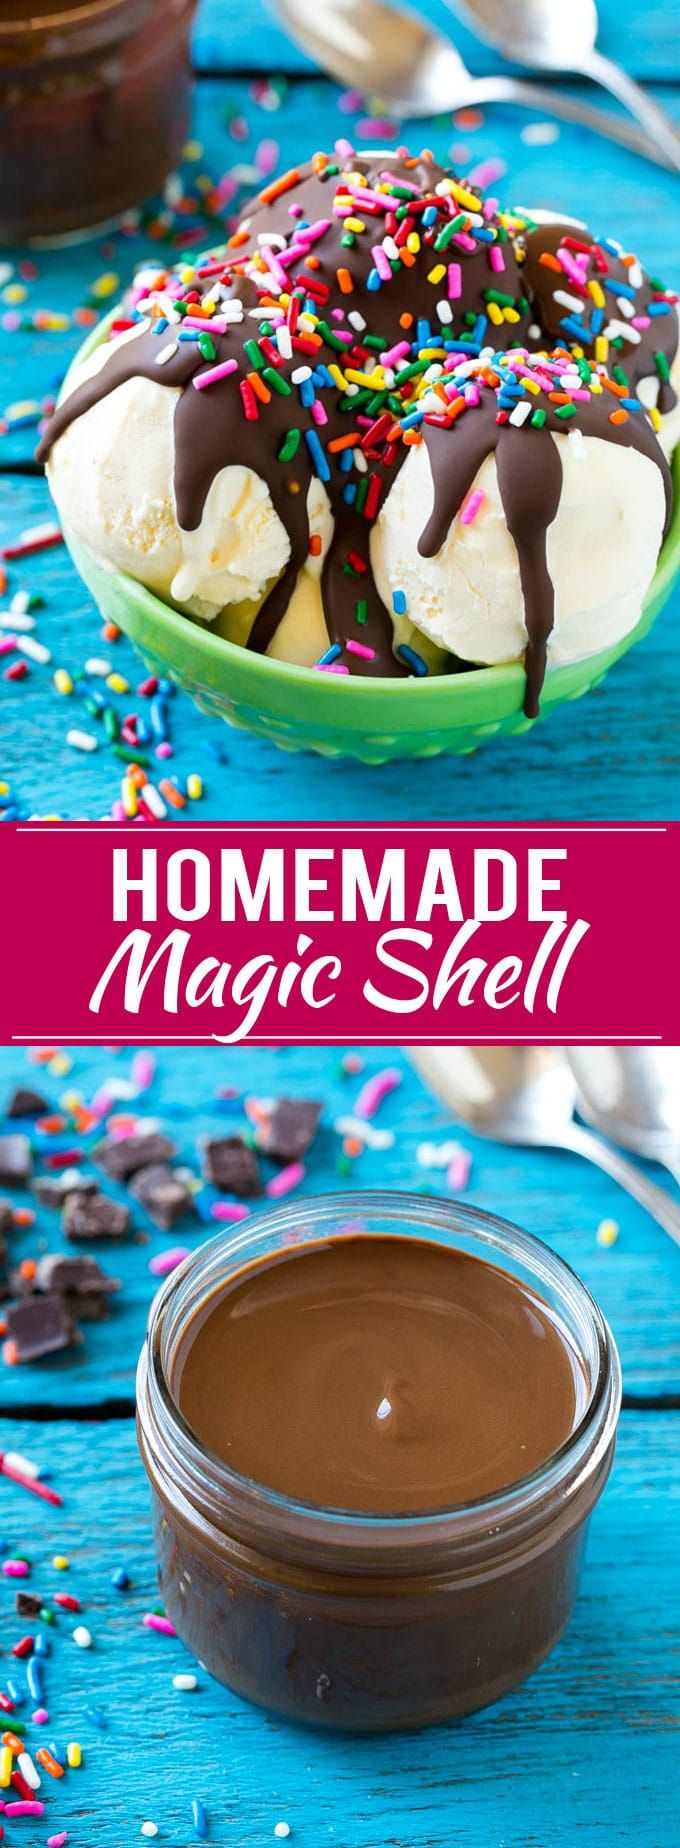 Homemade Magic Shell Recipe | Chocolate Ice Cream Topping | Chocolate Sauce | Hard Chocolate Coating